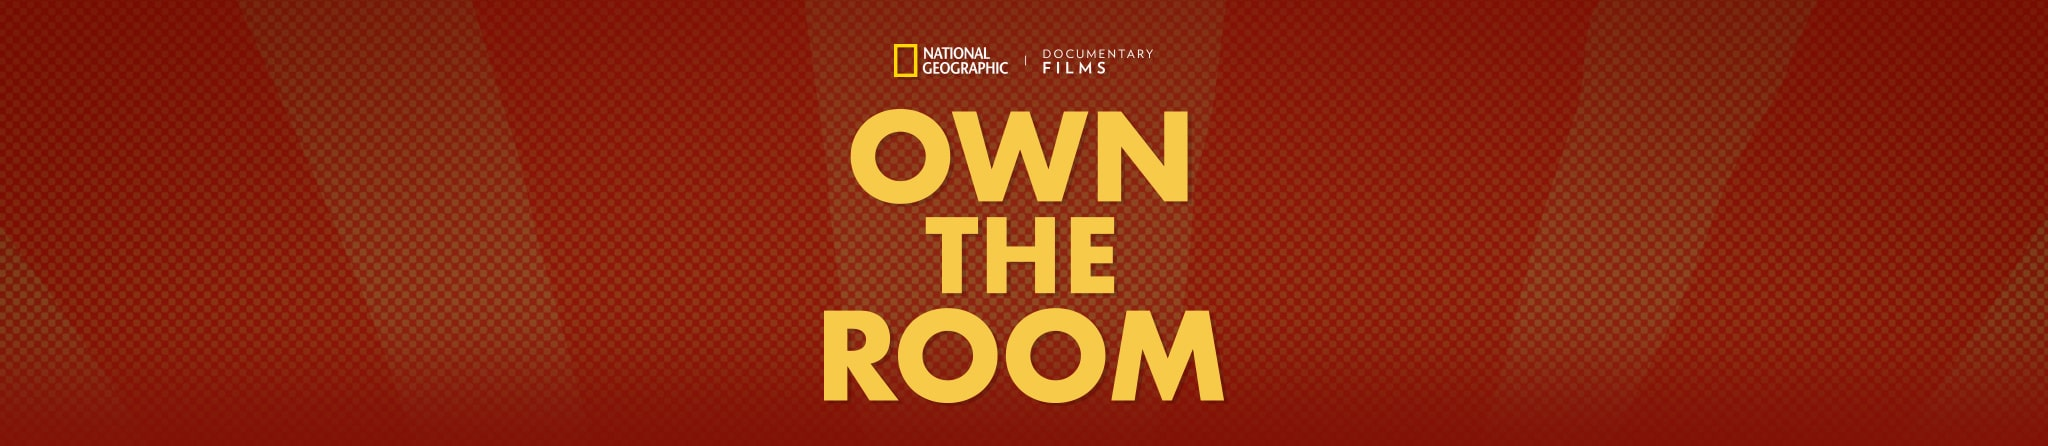 National Geographic Documentary Films | Own the Room